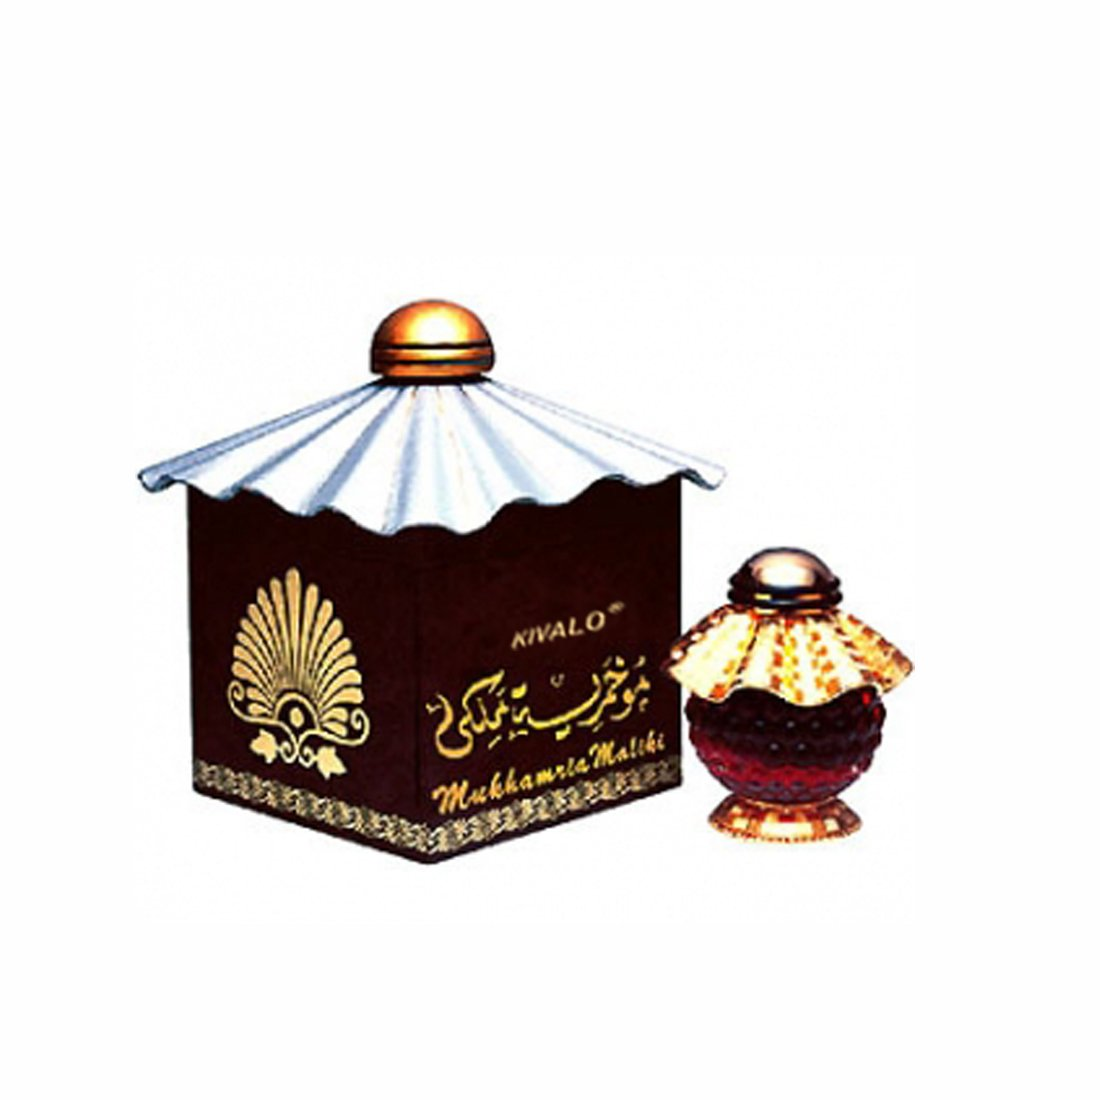 Al Haramain Mukhamira Maliki Attar - 45 ml